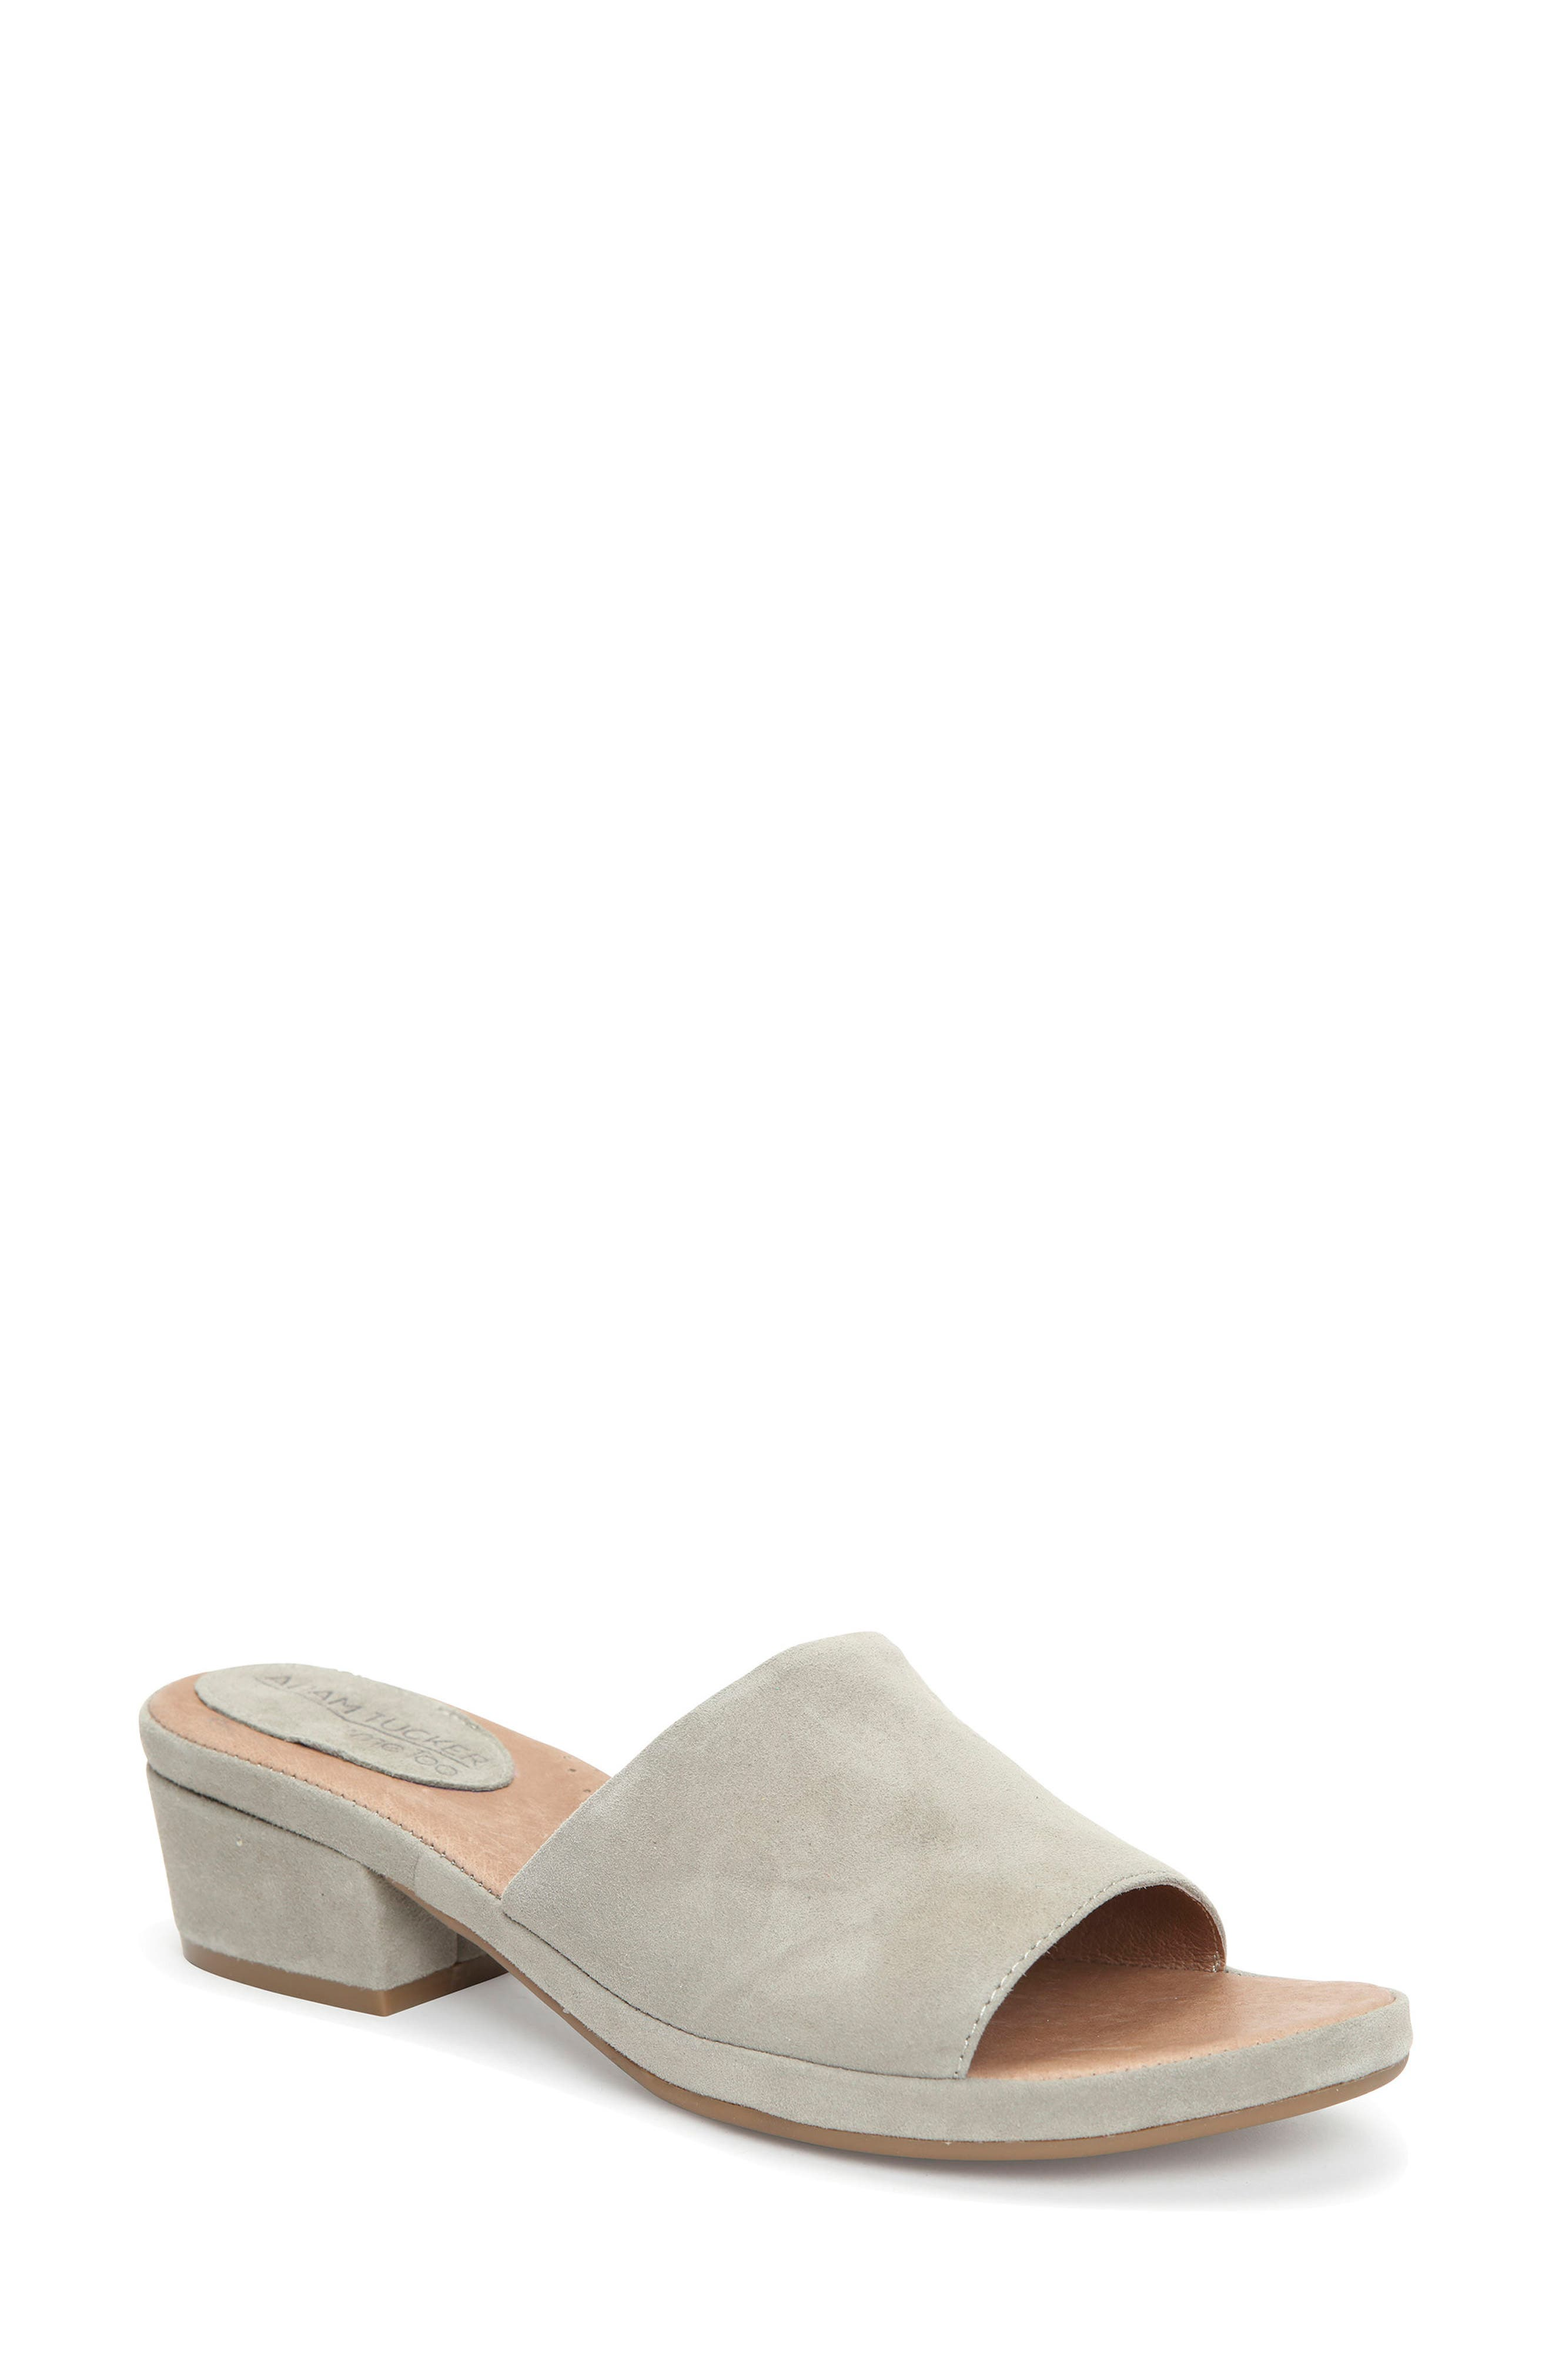 Adam Tucker Yolo Sandal- Grey